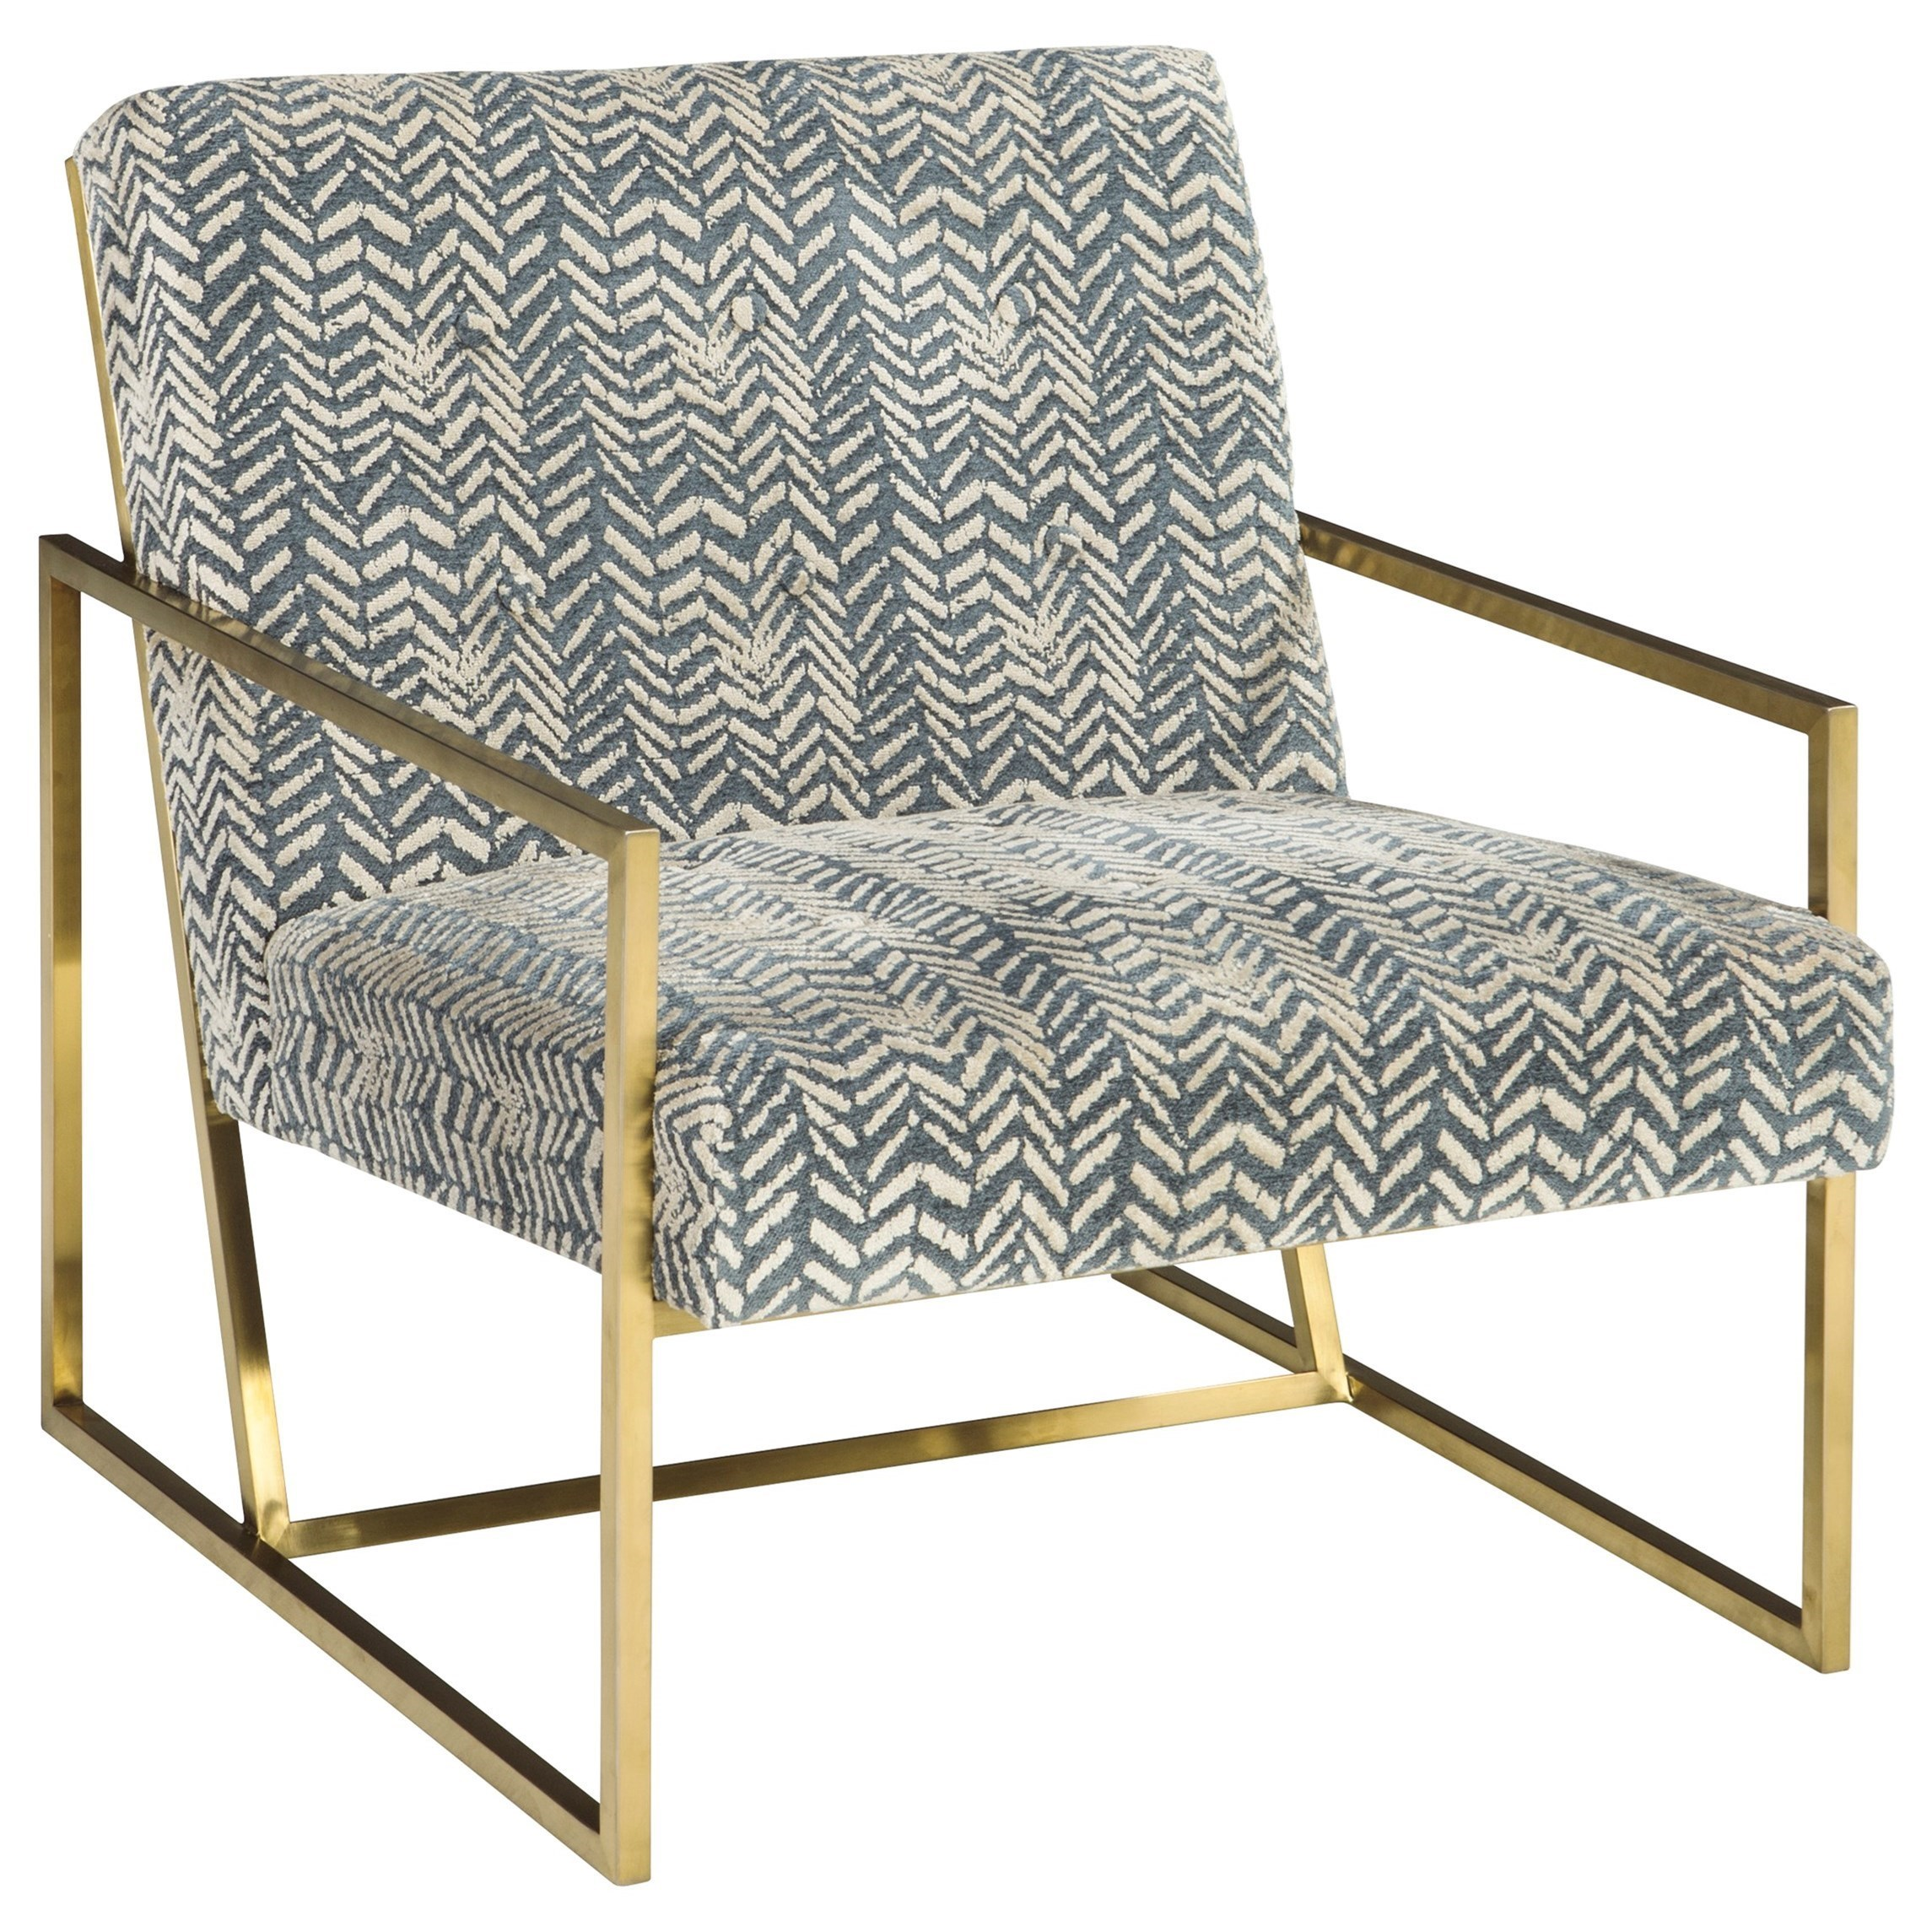 steel net chair big and tall desk staples signature design by ashley trucker gold finish metal arm accent with velvet fabric